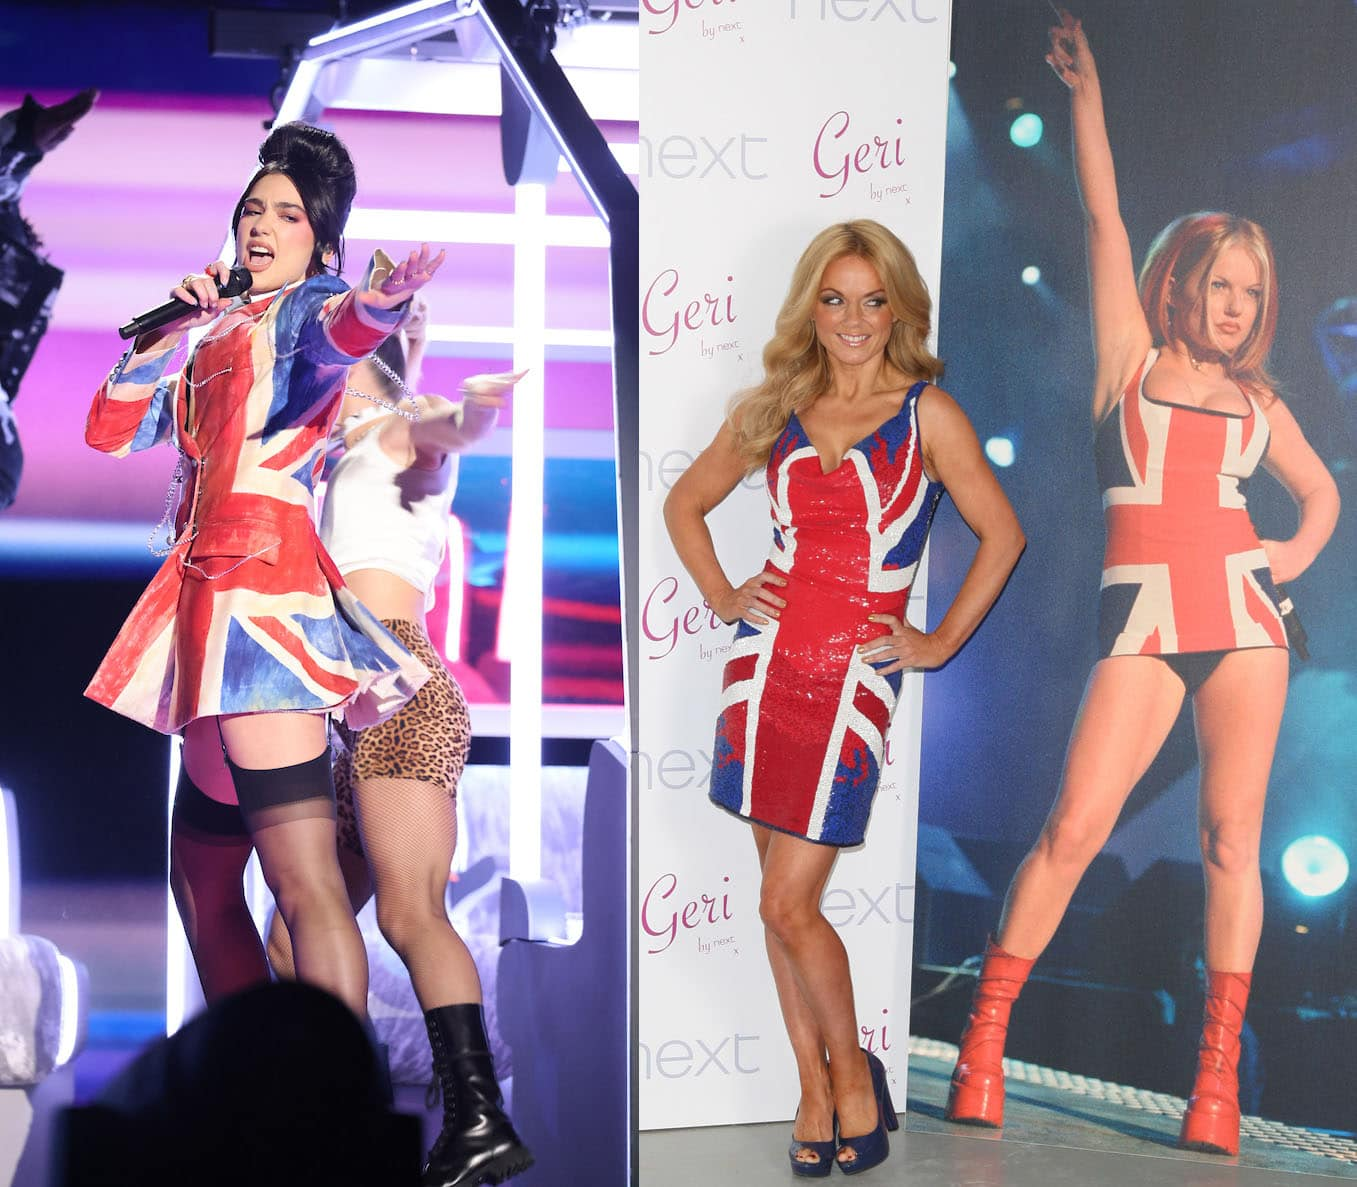 Dua Lipa performs Future Nostalgia medley in Geri Halliwell-inspired Union Jack outfit